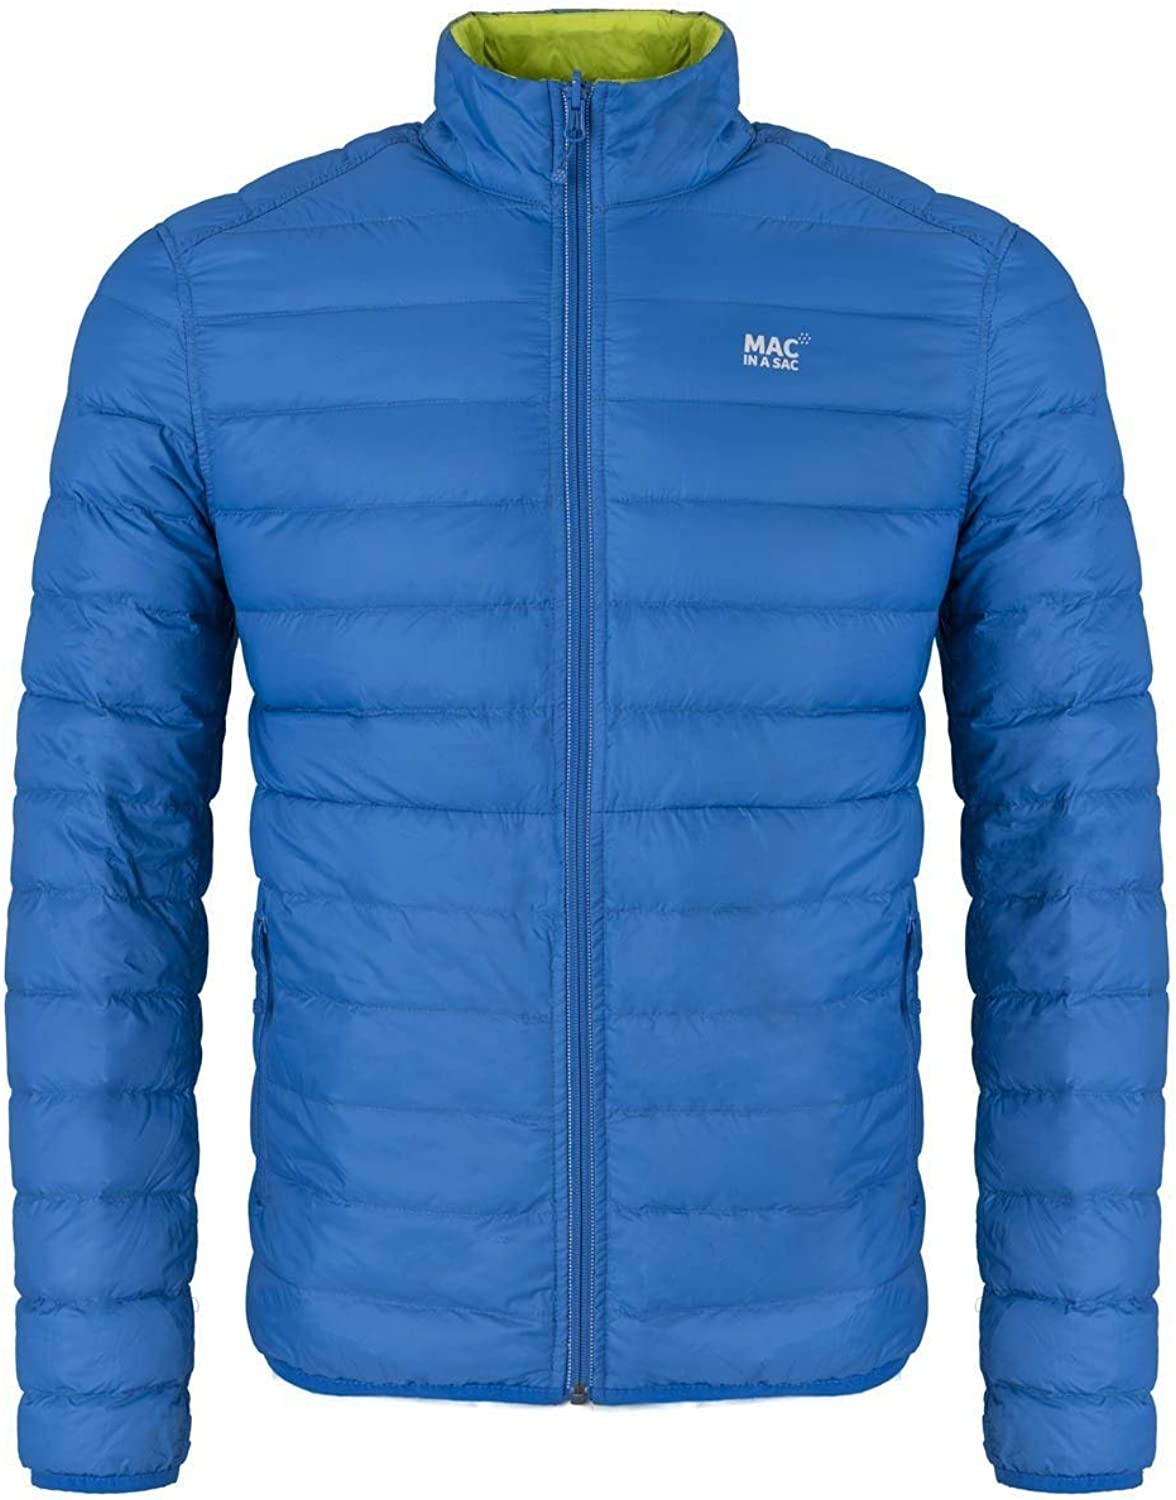 Mac in a Sac Polar Men's Packable Slim Fit Reversible Down Jacket